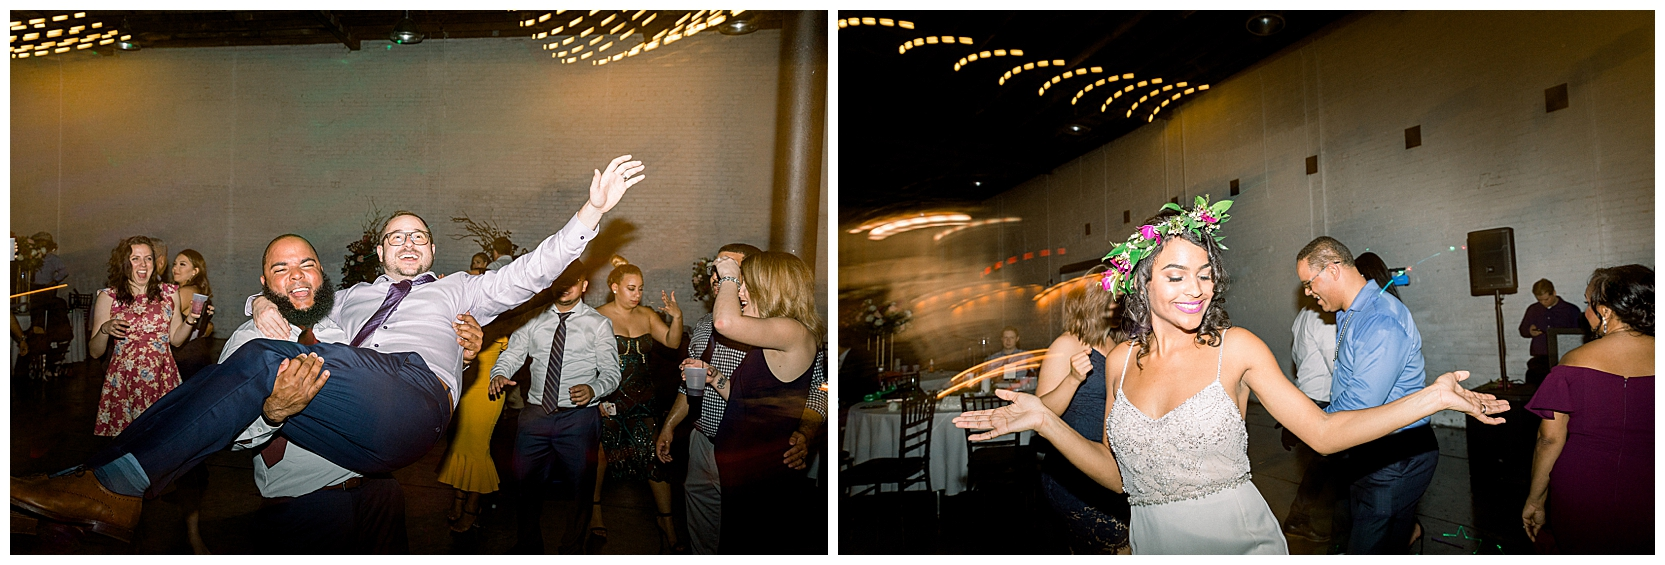 jessicafredericks_lakeland_tampa_wedding_purple_crazy hour_0105.jpg